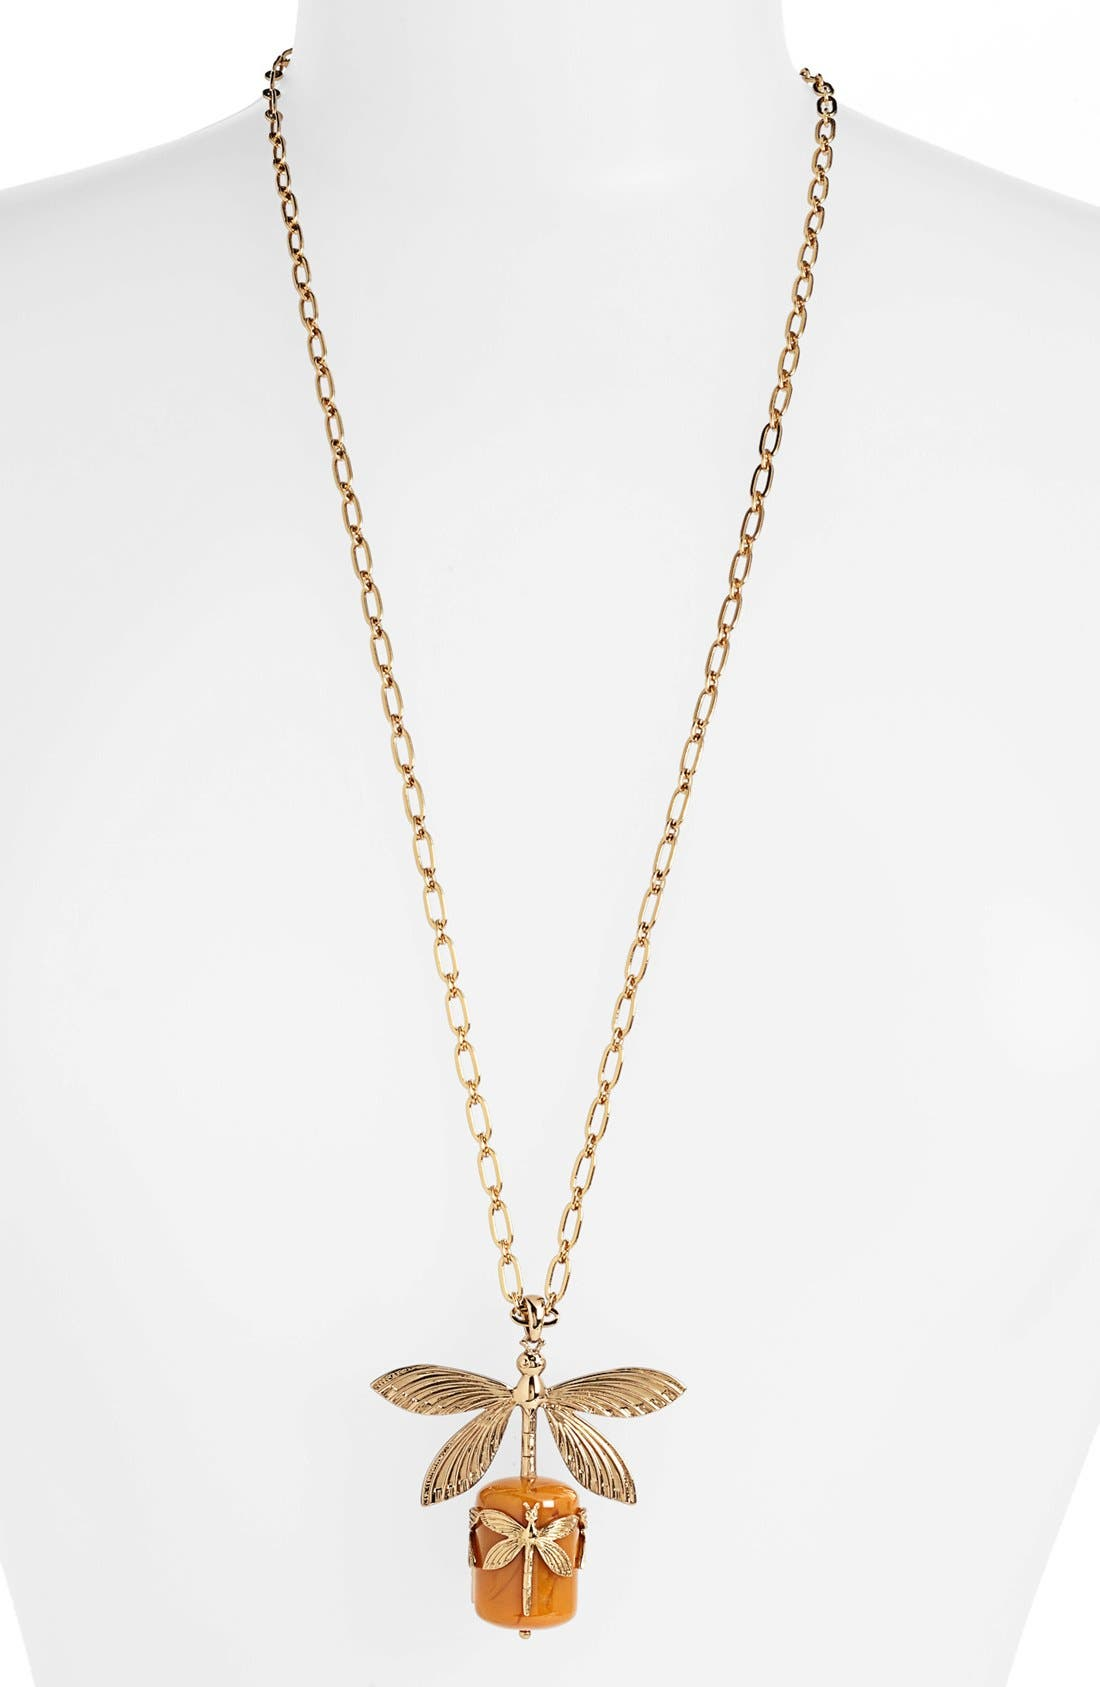 Main Image - Tory Burch Dragonfly Pendant Necklace